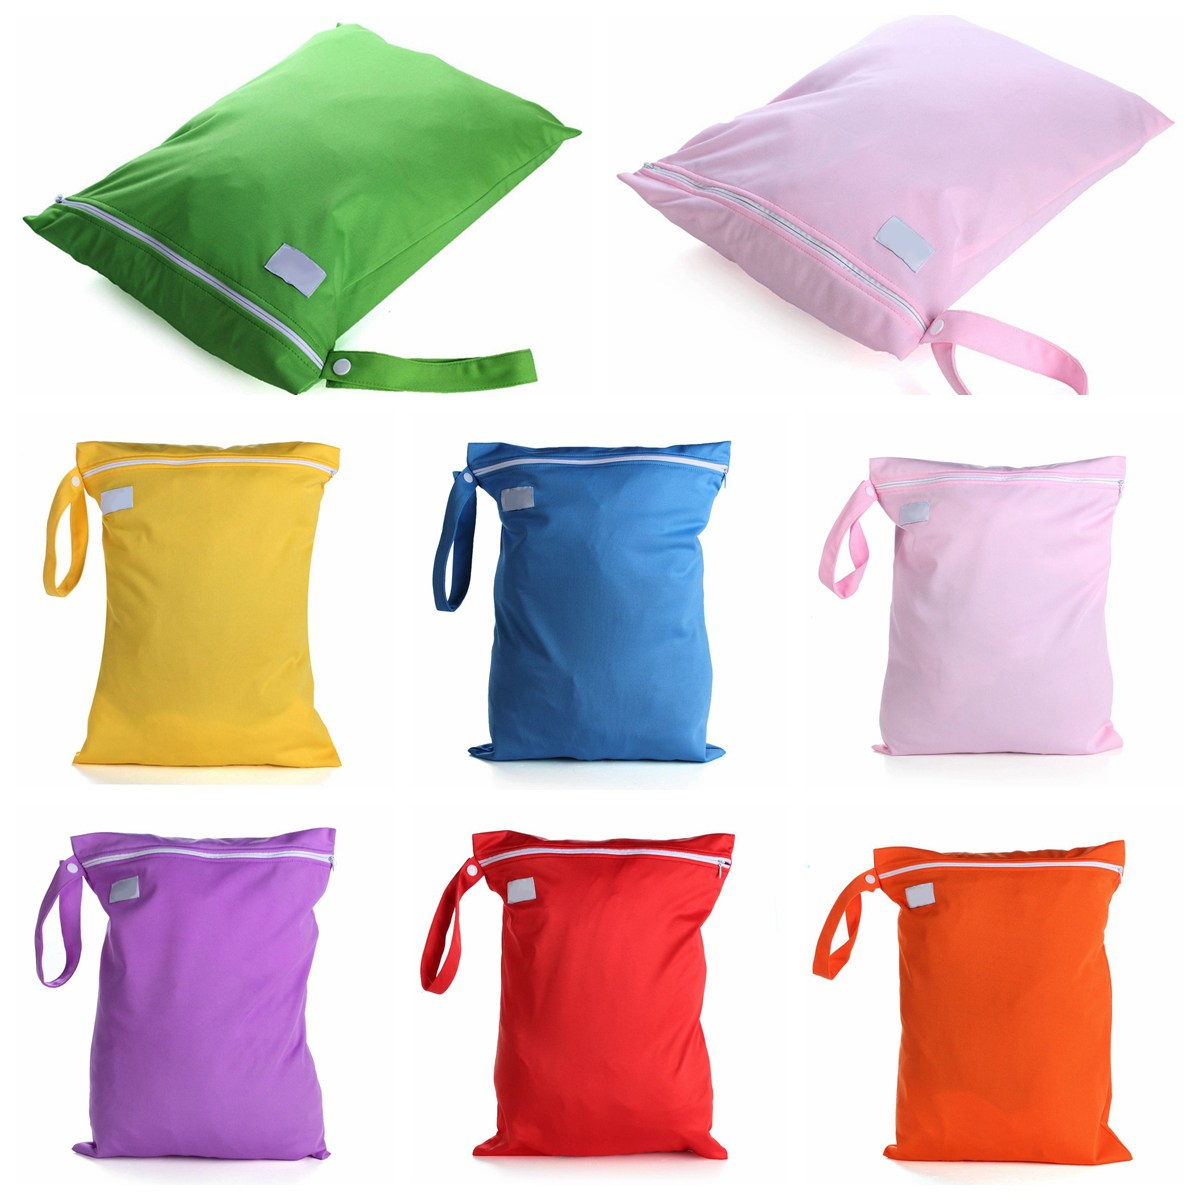 2pcs/lot Fabric + PUL Membrane Waterproof Baby Infant Cloth Diaper Wet/Dry Zipper Bag Washable Reusable Diaper Bags 29cm*35cm ...